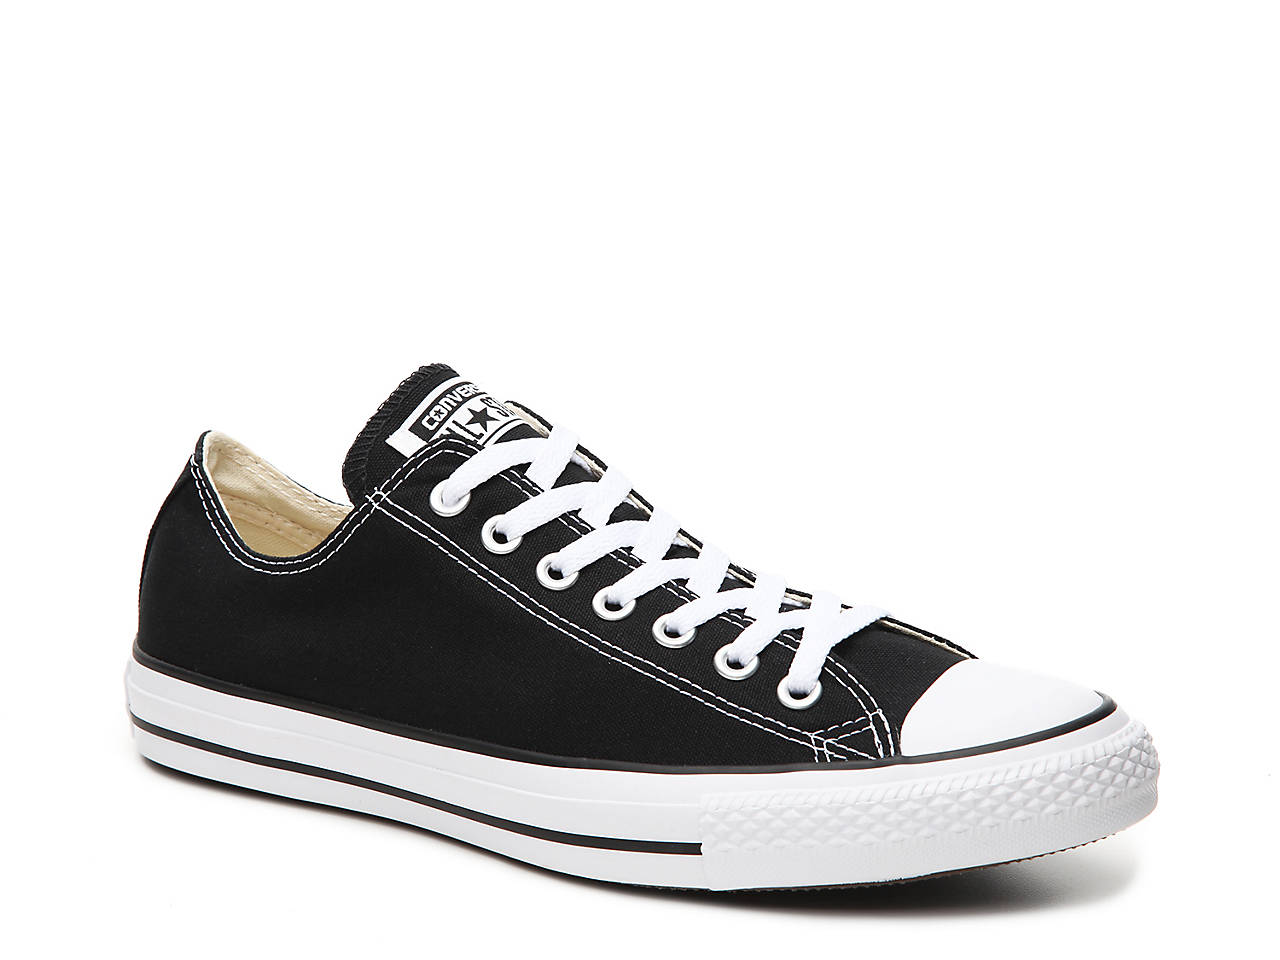 365e64e7fd37 Converse Chuck Taylor All Star Sneaker - Men s Men s Shoes